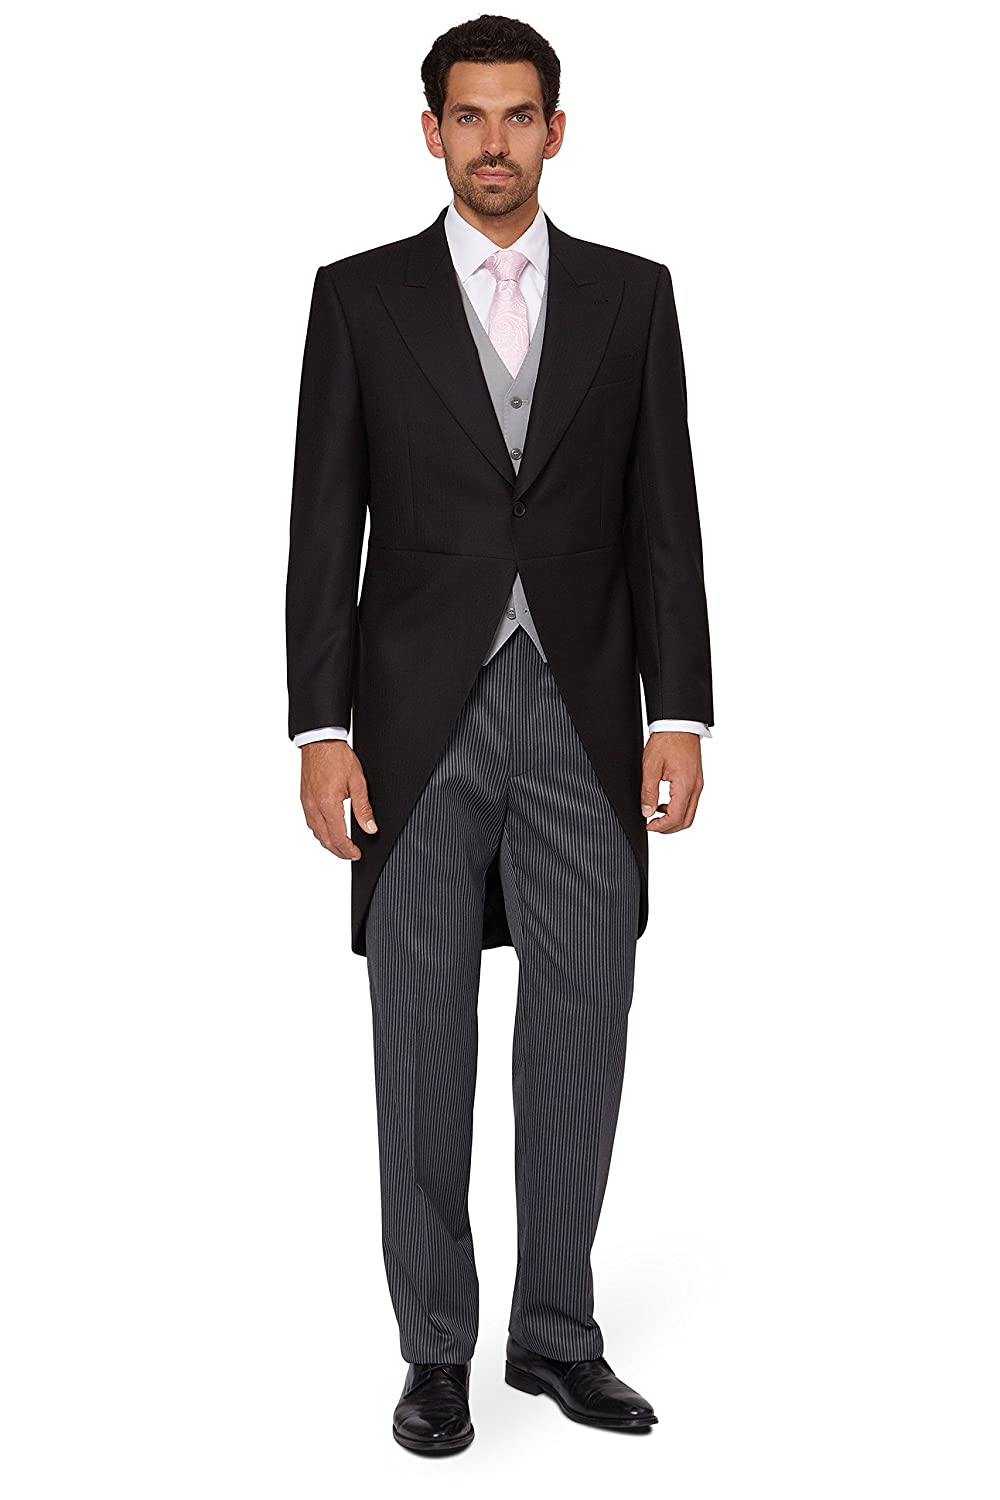 Men's Vintage Style Suits, Classic Suits  Regular Fit Black Fine Herringbone Morningwear Coat $300.00 AT vintagedancer.com